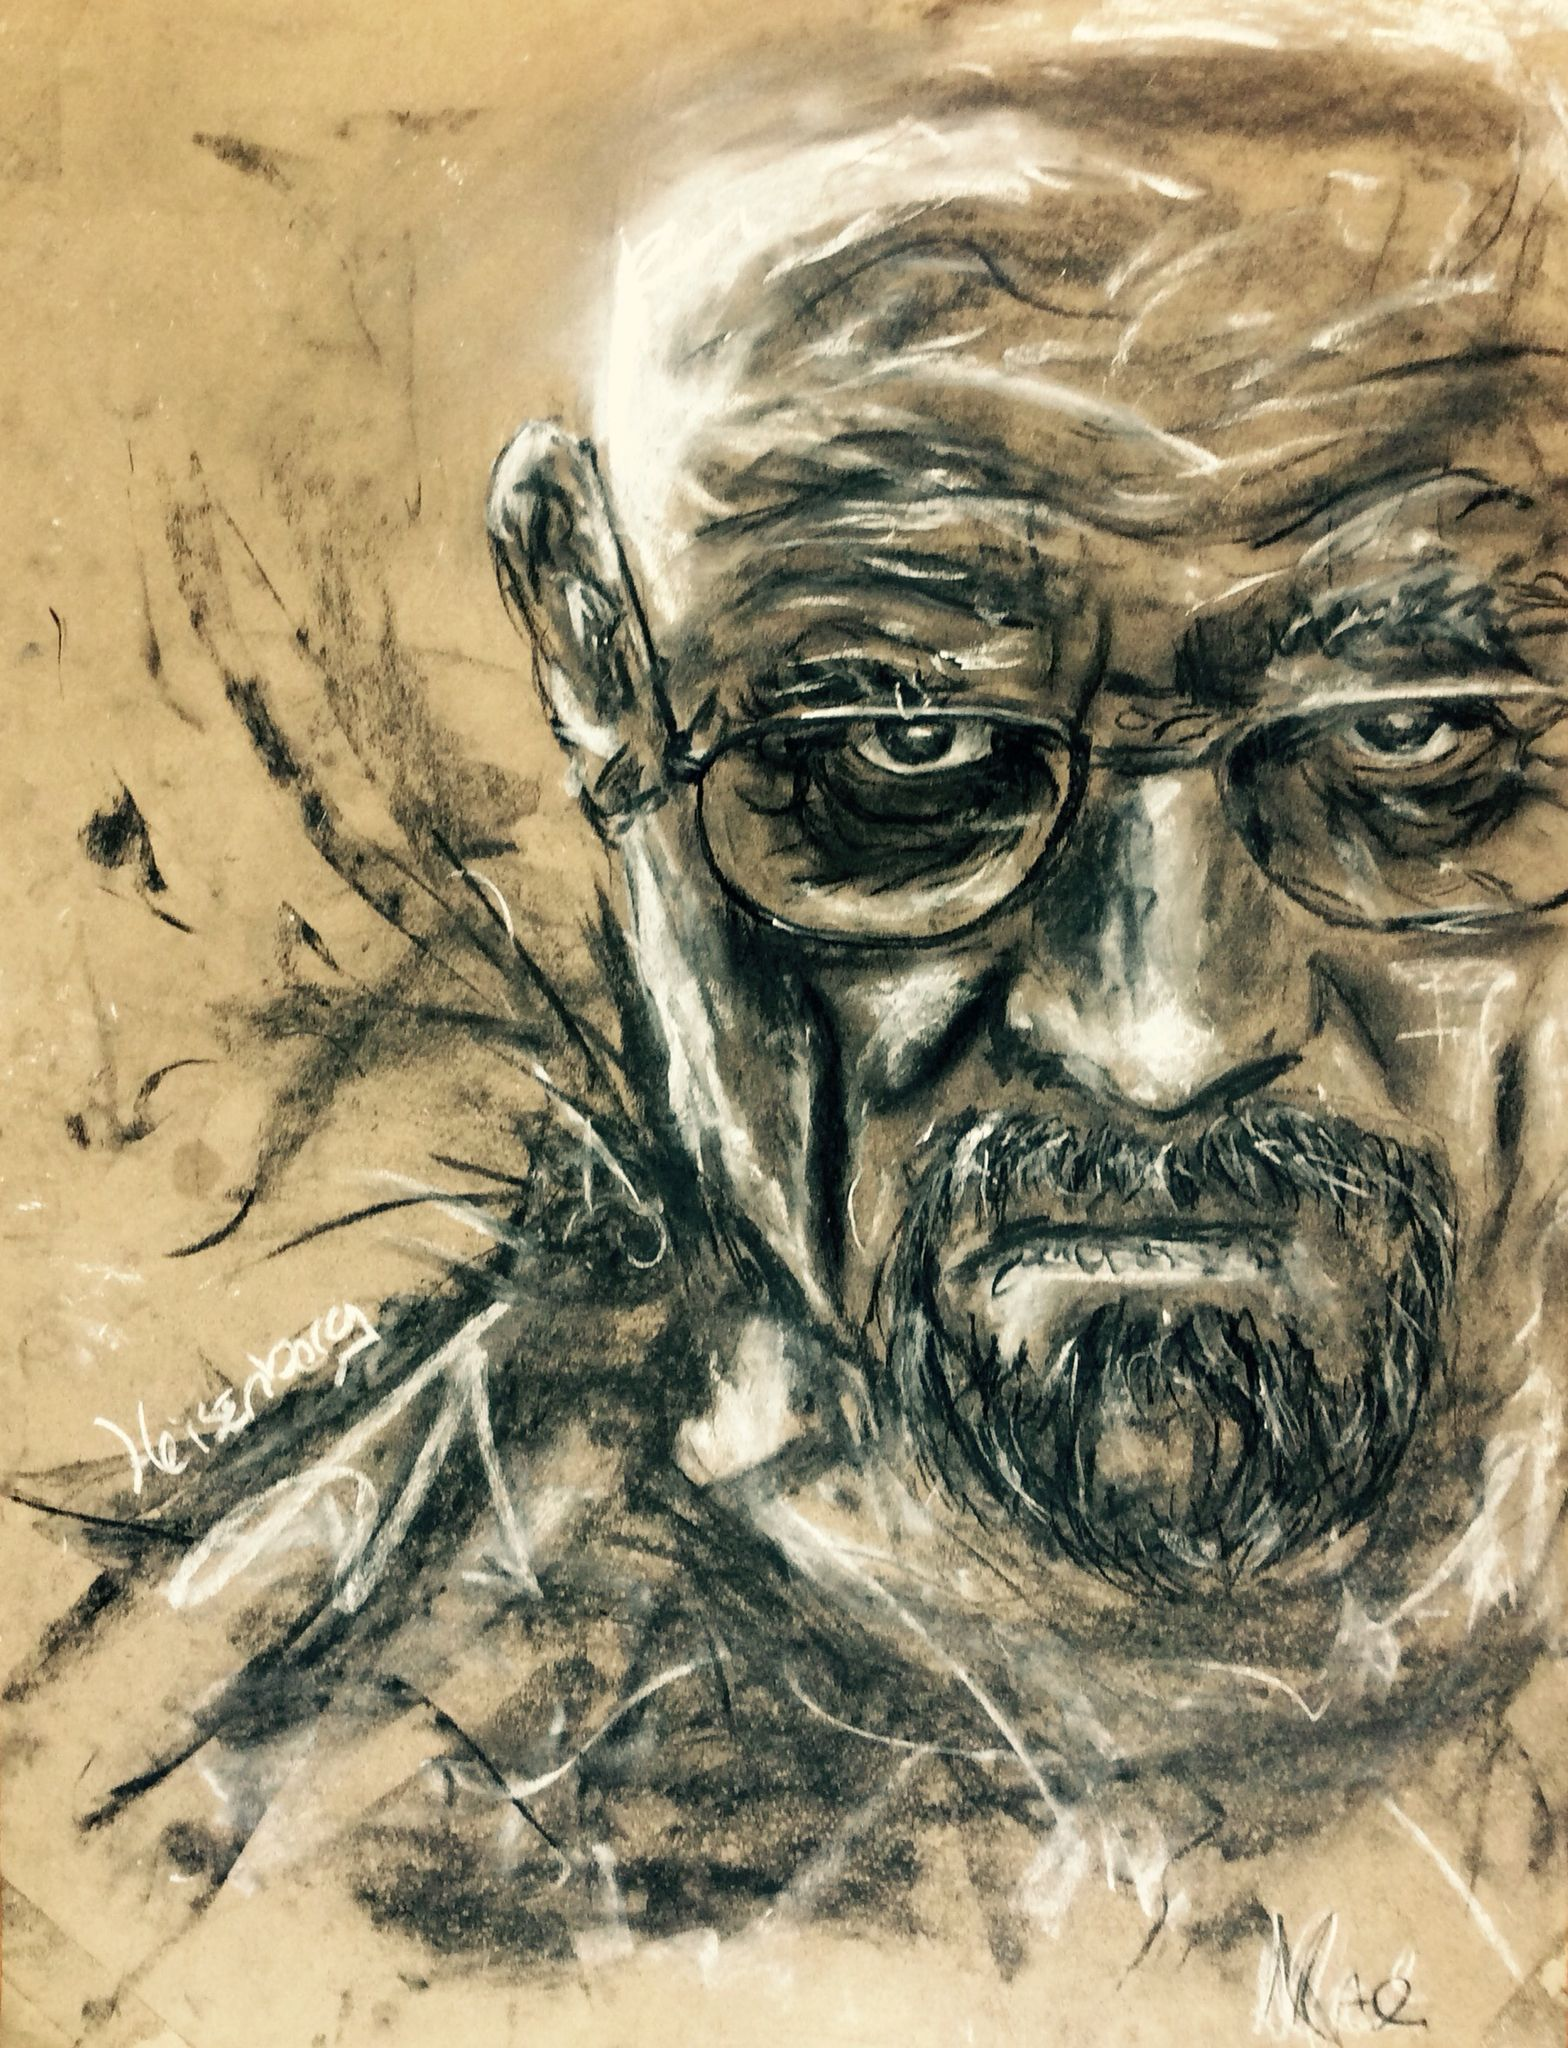 Walter White heisenberg breaking bad - Max de Haan